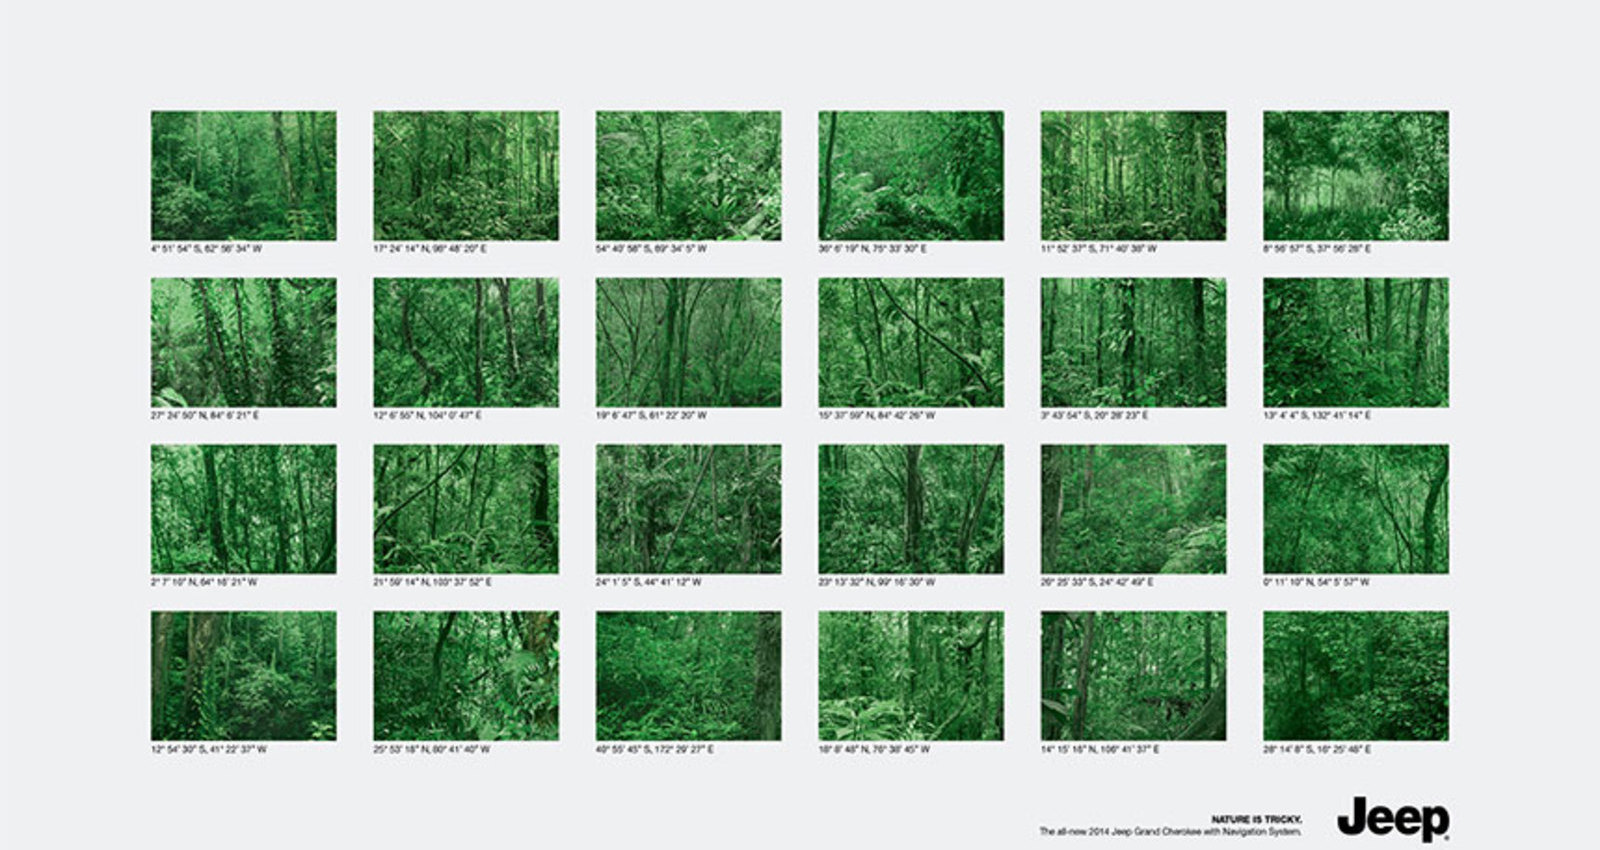 Coordinates: Forests